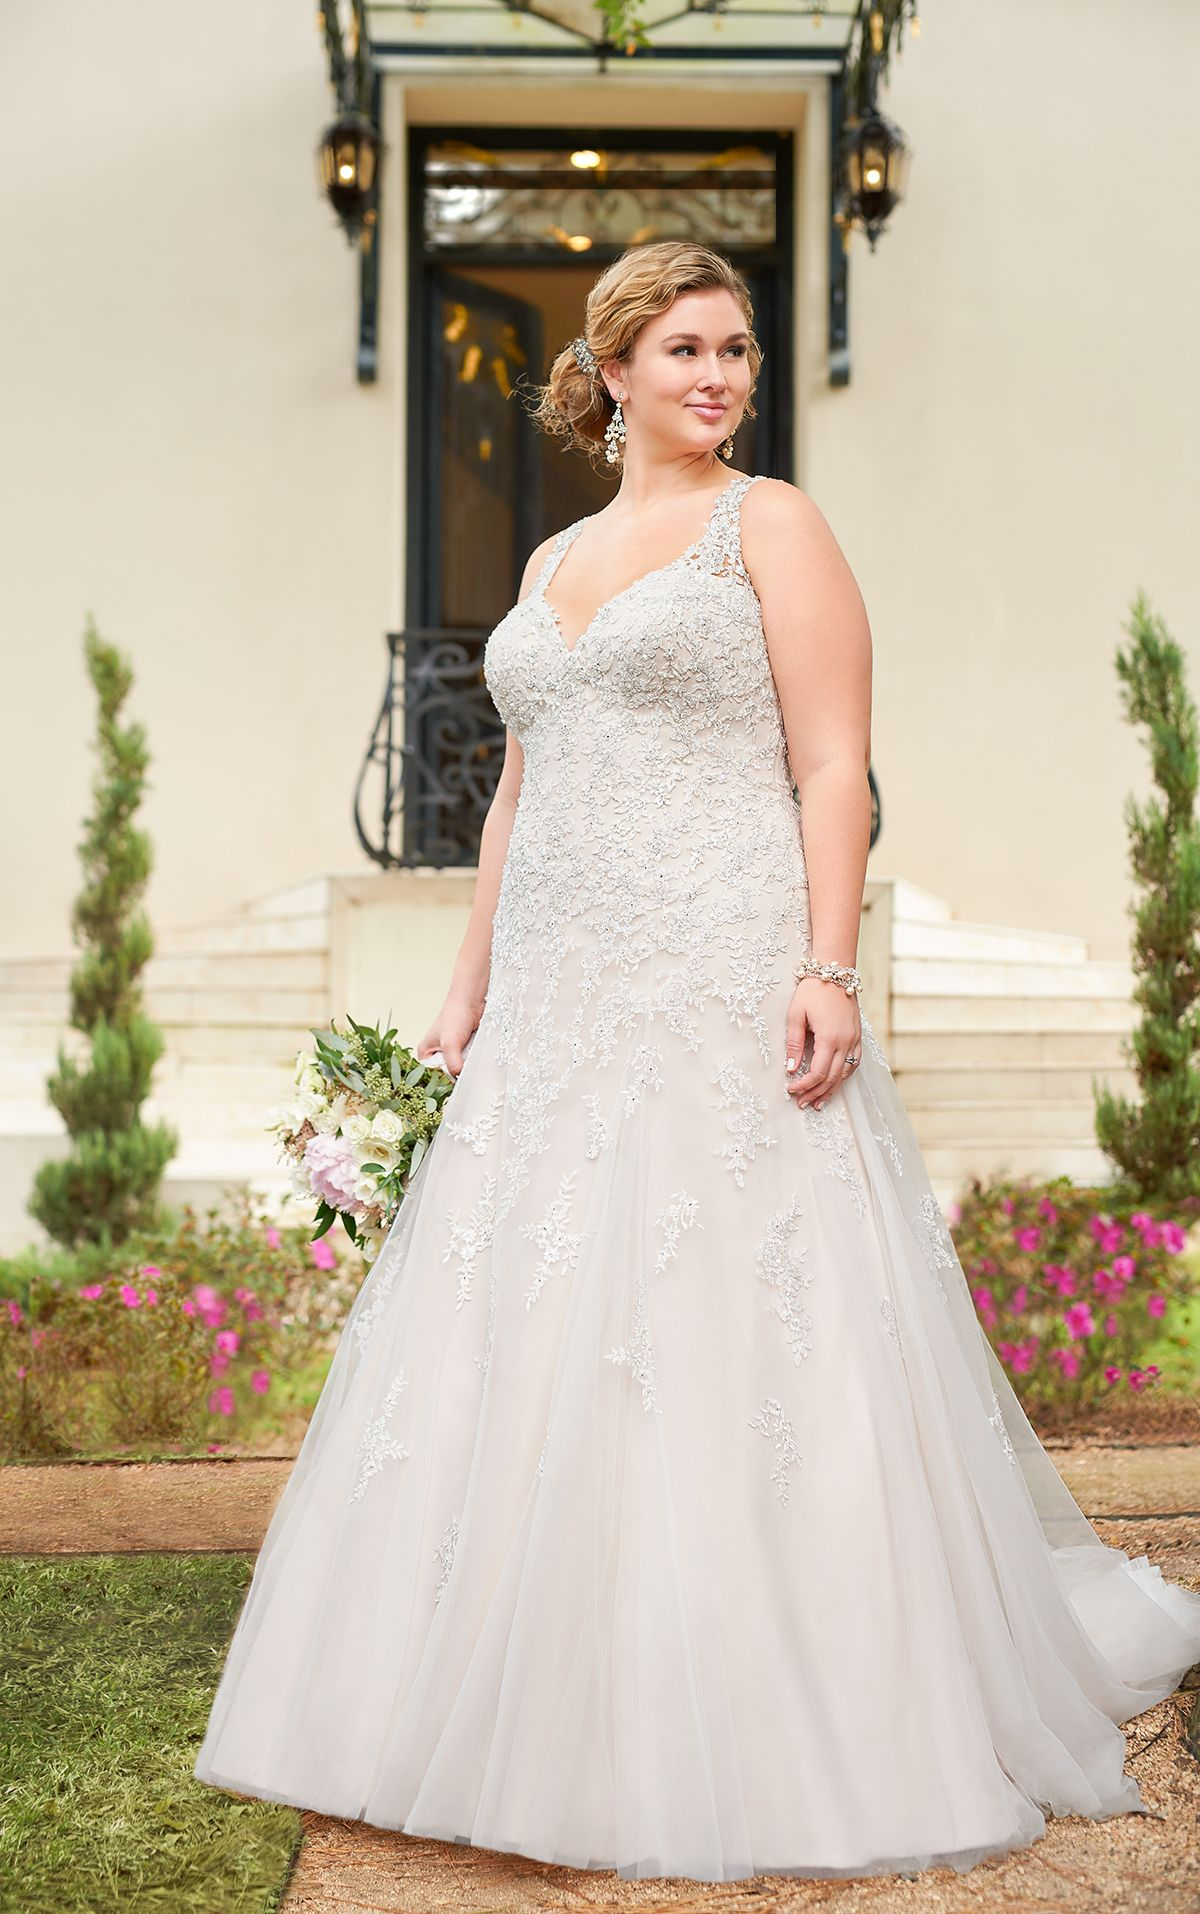 This sparkling silver lace plus size wedding dress from Stella York is sure to be a show-stopper! The modern modified A-line silhouette boasts metallic lace that flows down from the Diamante covered bodice onto a light-as-air tulle skirt. The sweetheart neckline and illusion lace straps create an organic-edge neck that will flatter any bride-to-be! Sparkling crystal bead work brings attention to the bride's face while the tulle skirt adds drama and dimension to the look.